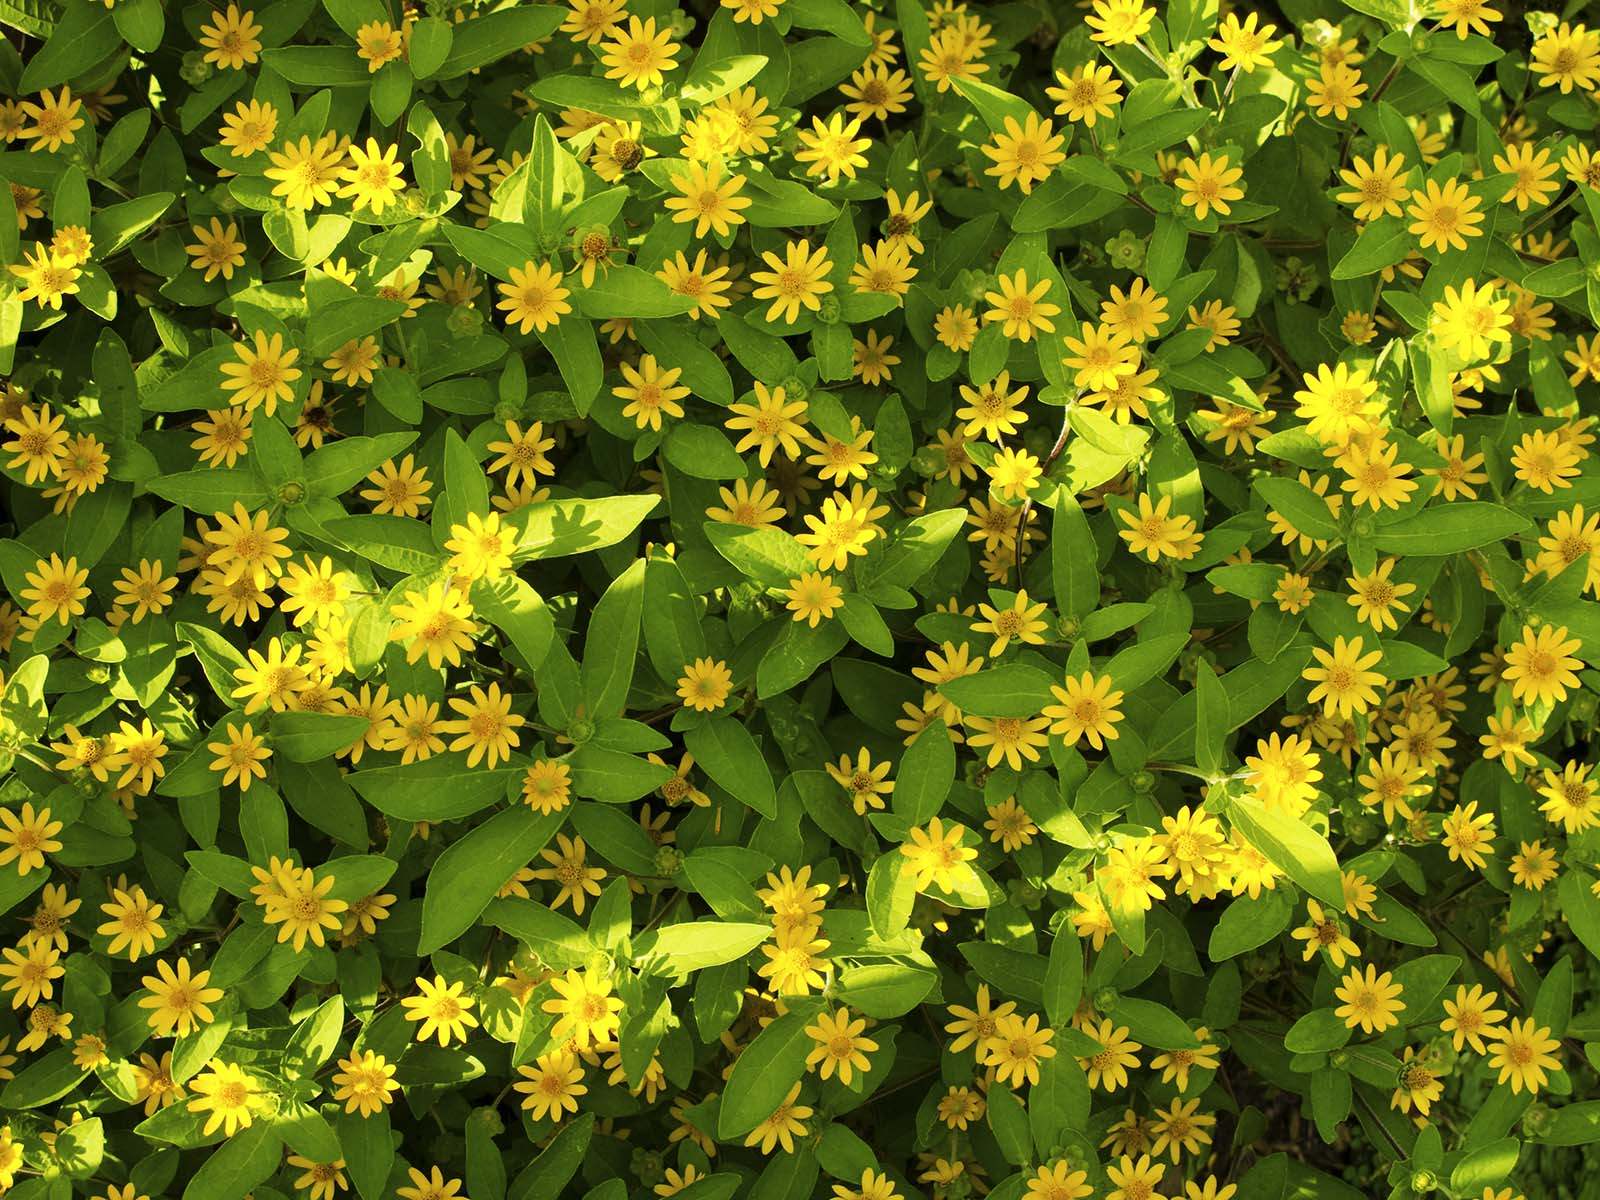 Yellow flowers by name 10 desktop background hdflowerwallpaper yellow flowers by name free wallpaper mightylinksfo Image collections